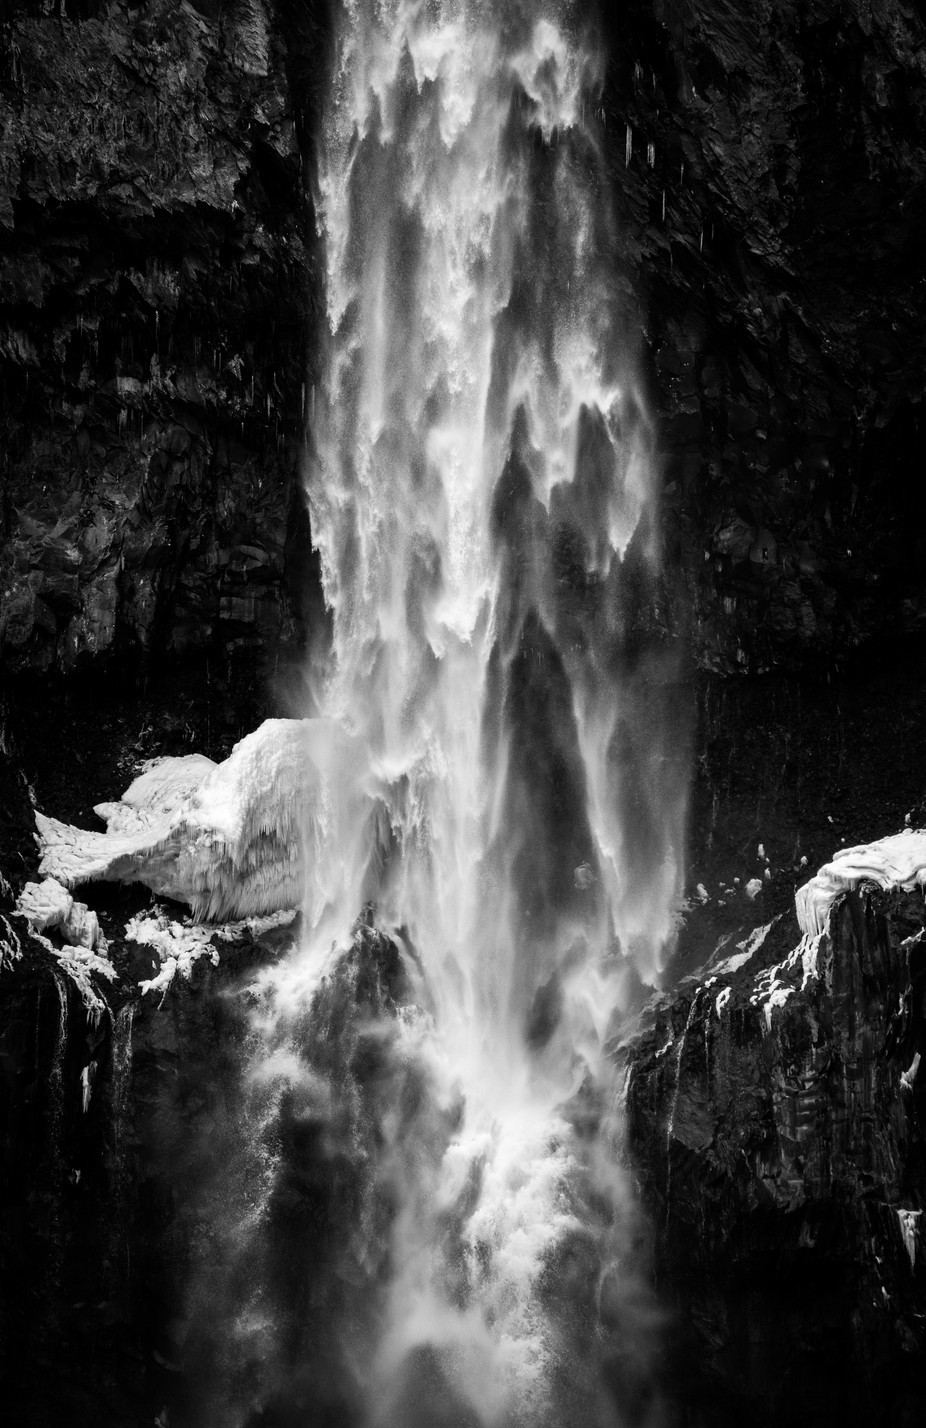 Power of Nature by wojciech_toman - Everything In Black And White Photo Contest